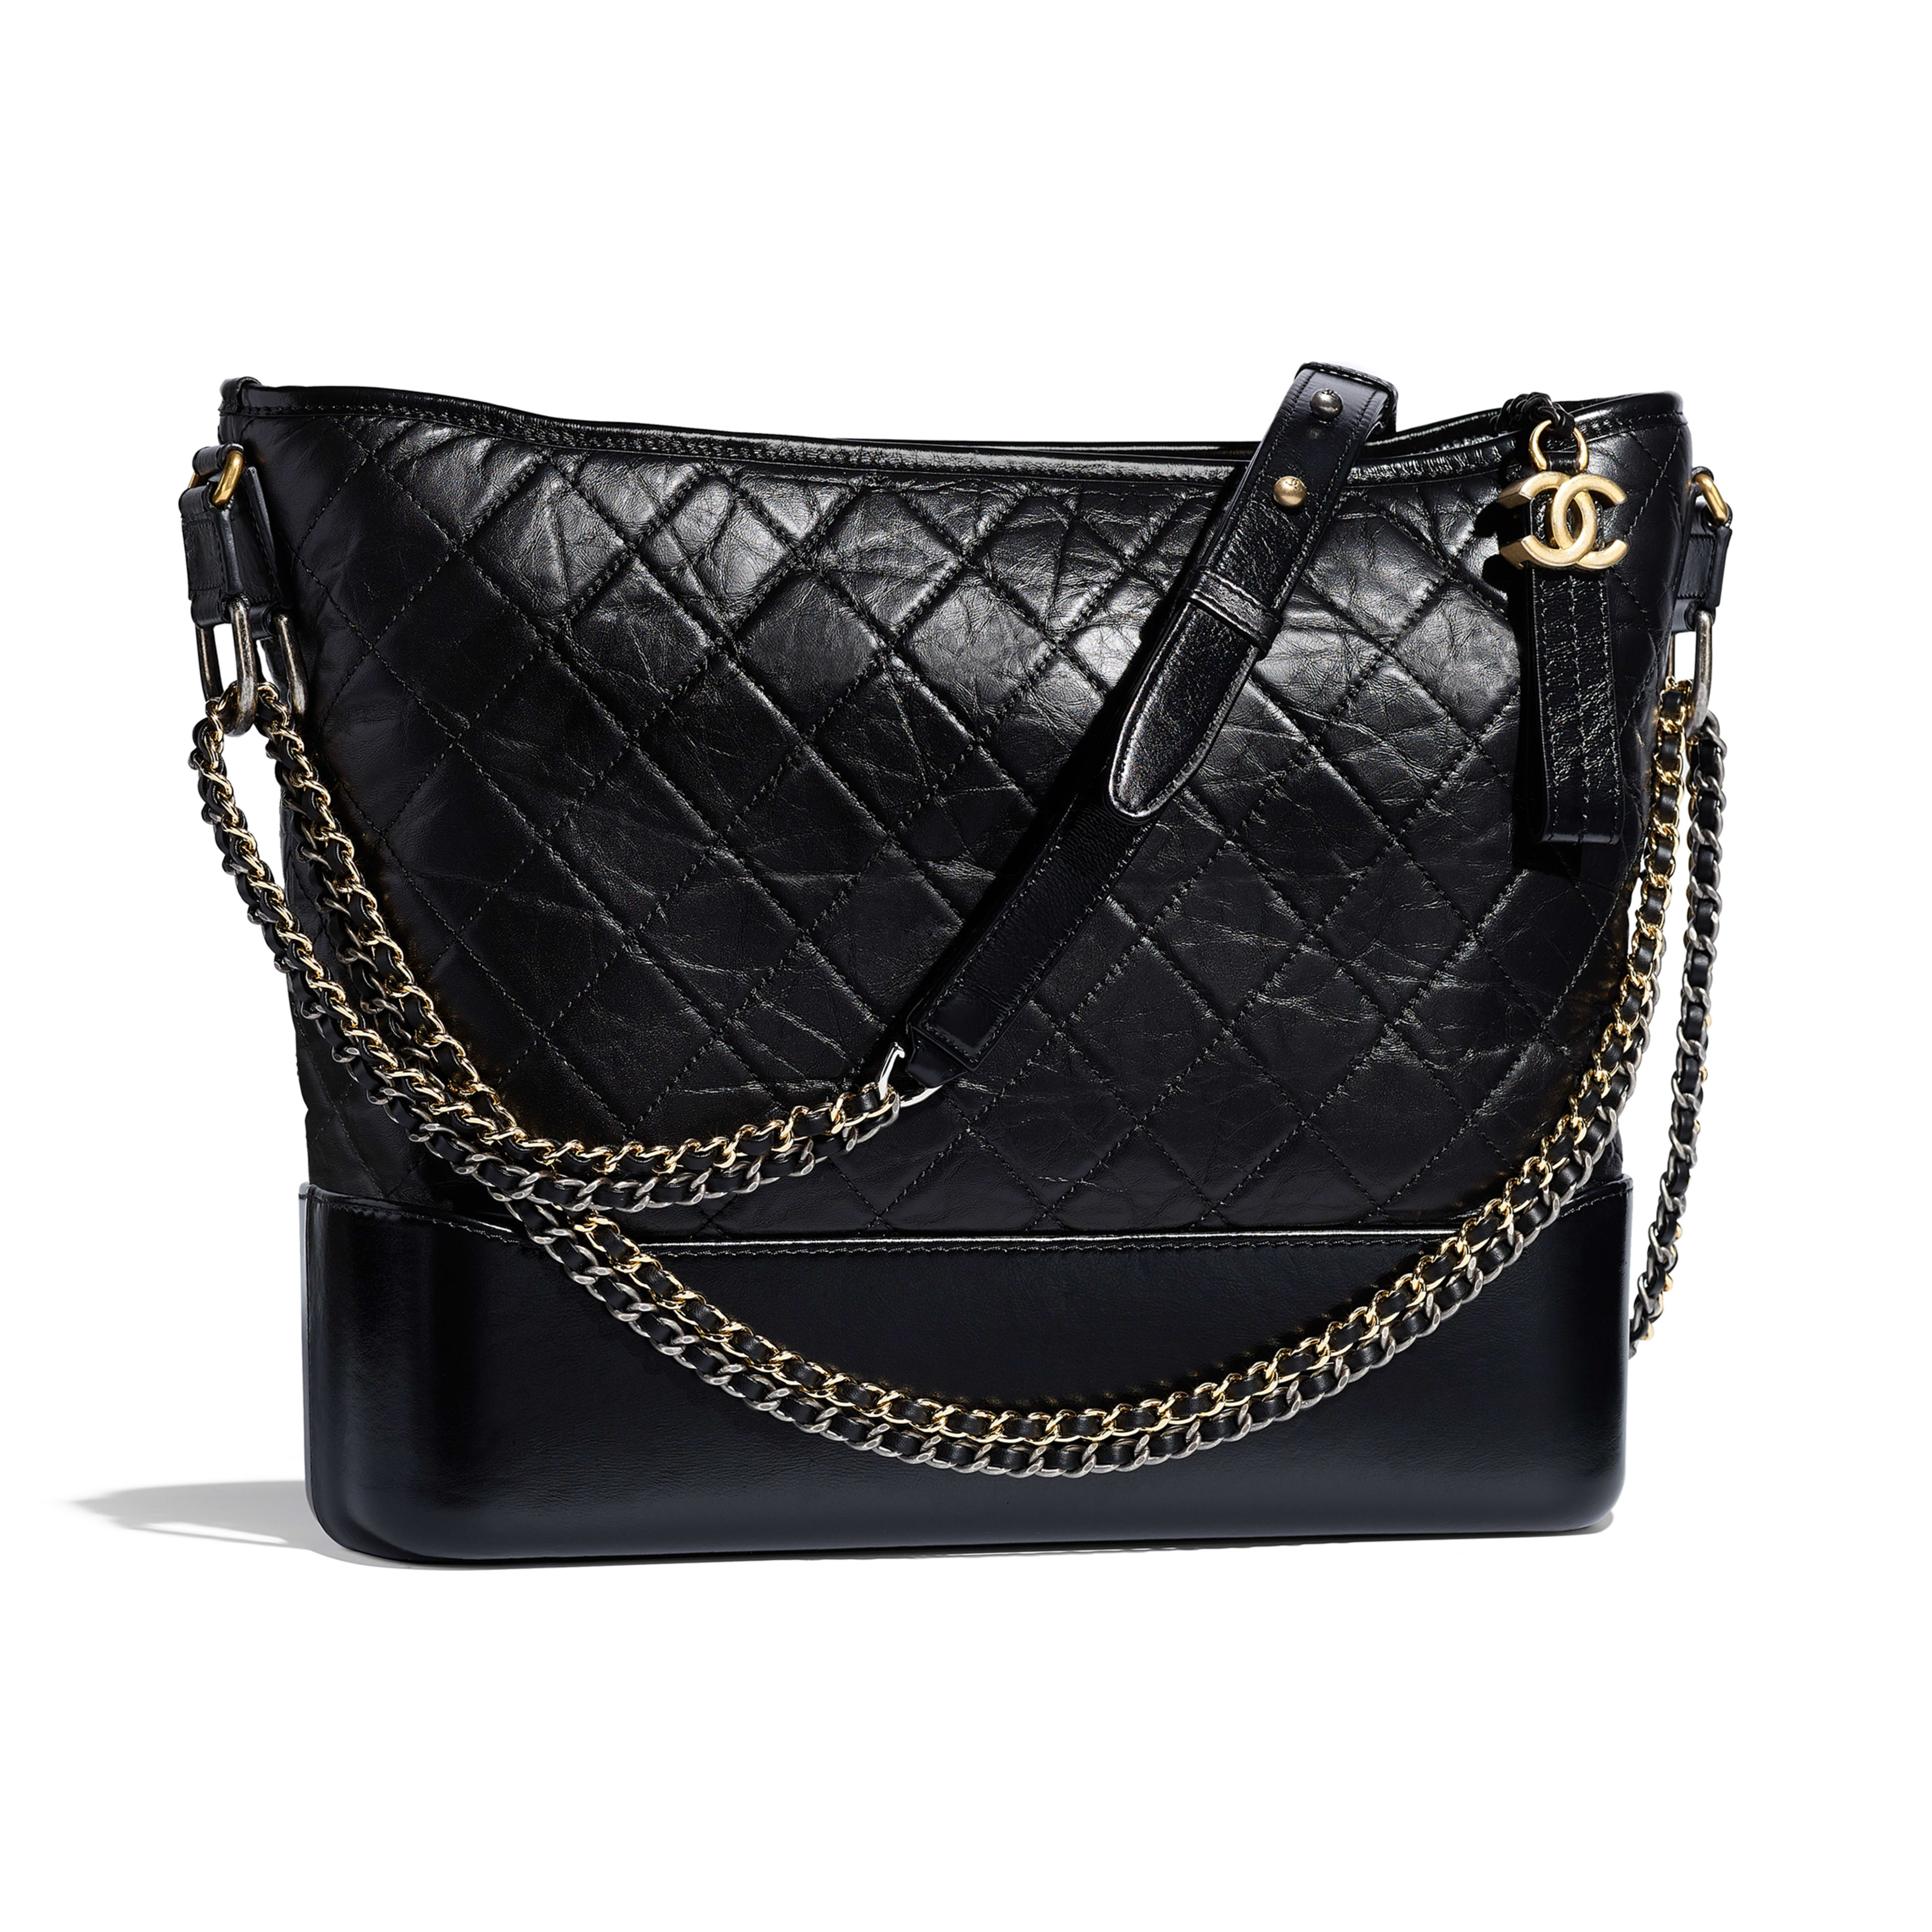 CHANEL'S GABRIELLE Large Hobo Bag - Black - Aged Calfskin, Smooth Calfskin, Silver-Tone & Gold-Tone Metal - Other view - see full sized version